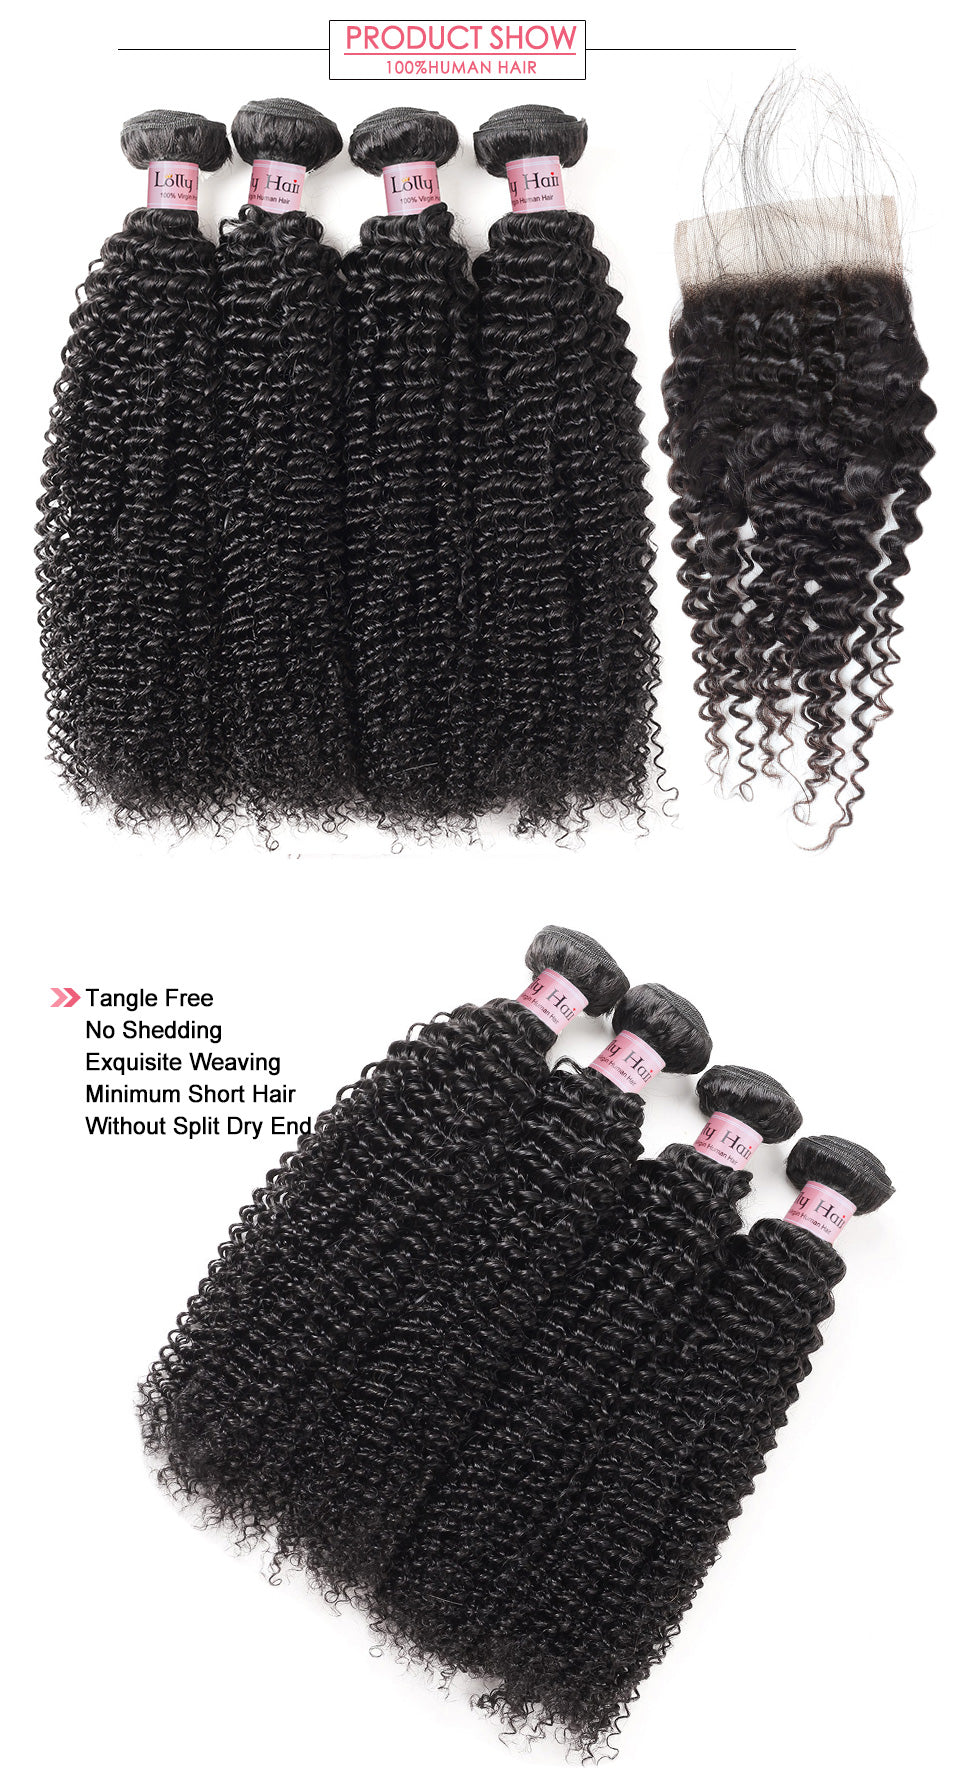 Lolly Brazilian Kinky Curly Hair 4 Bundles with Lace Closure Baby Hair